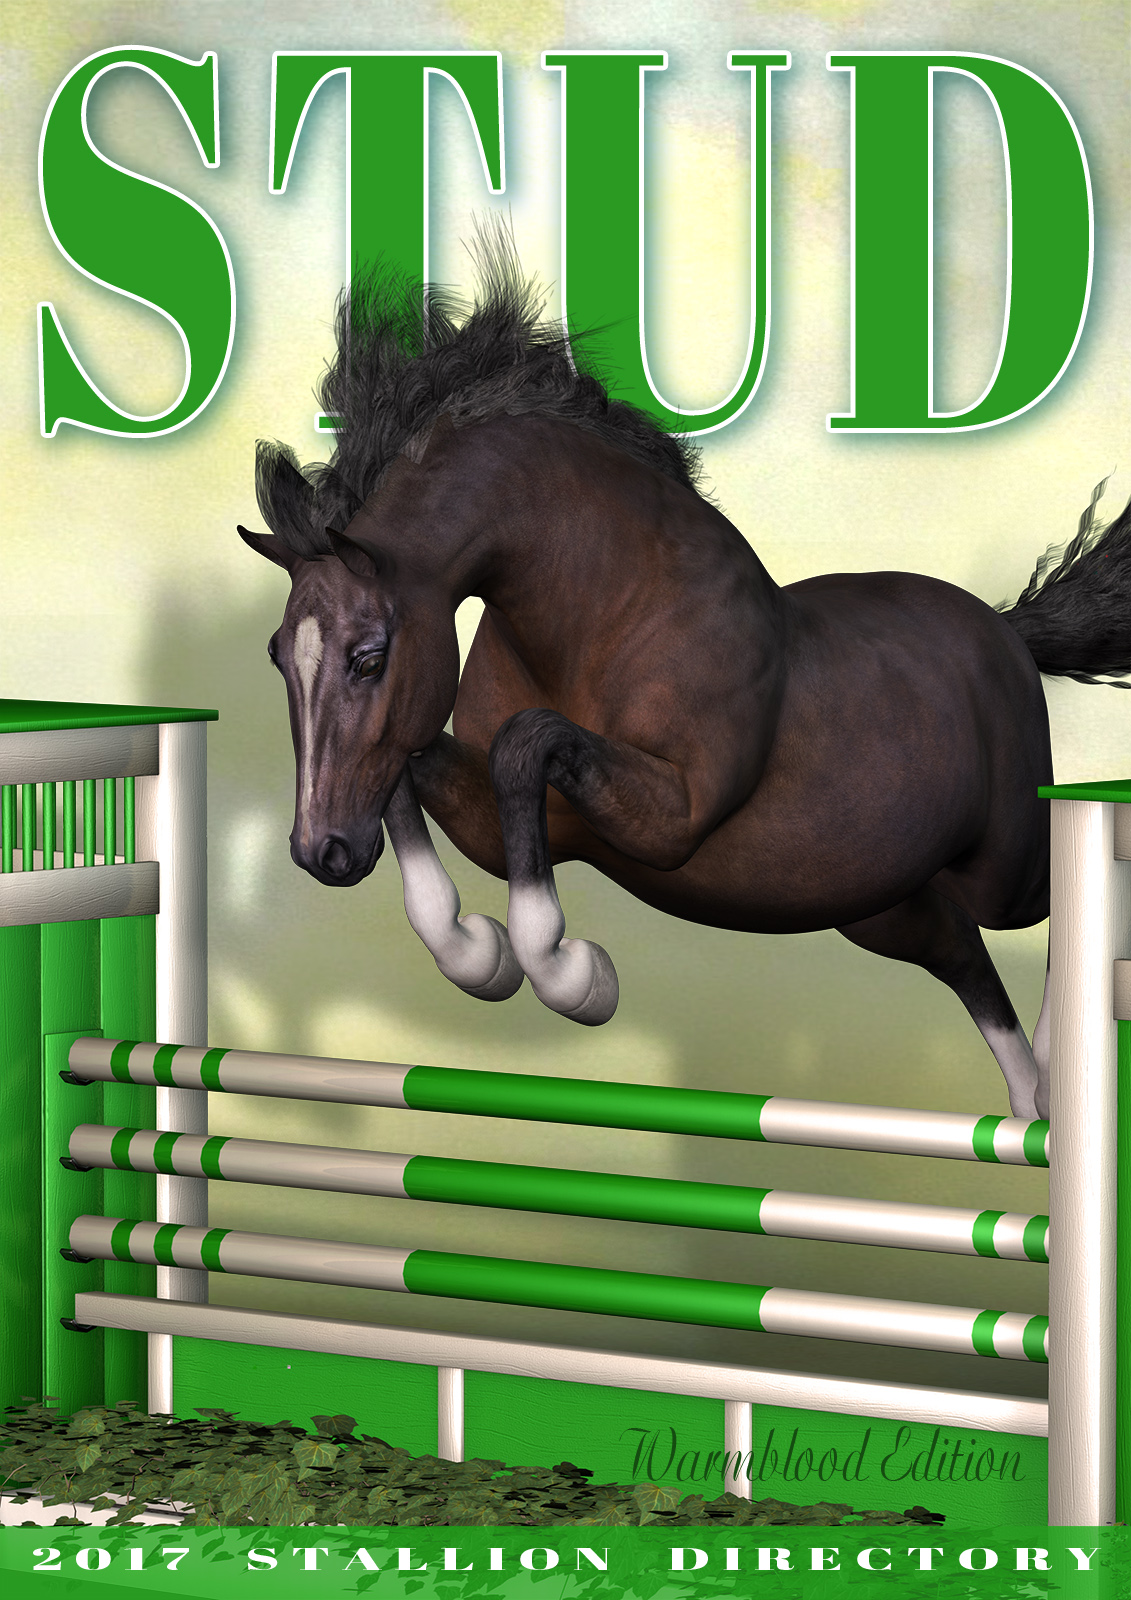 Magazine Cover - Stallion Directory - Warmblood Edition